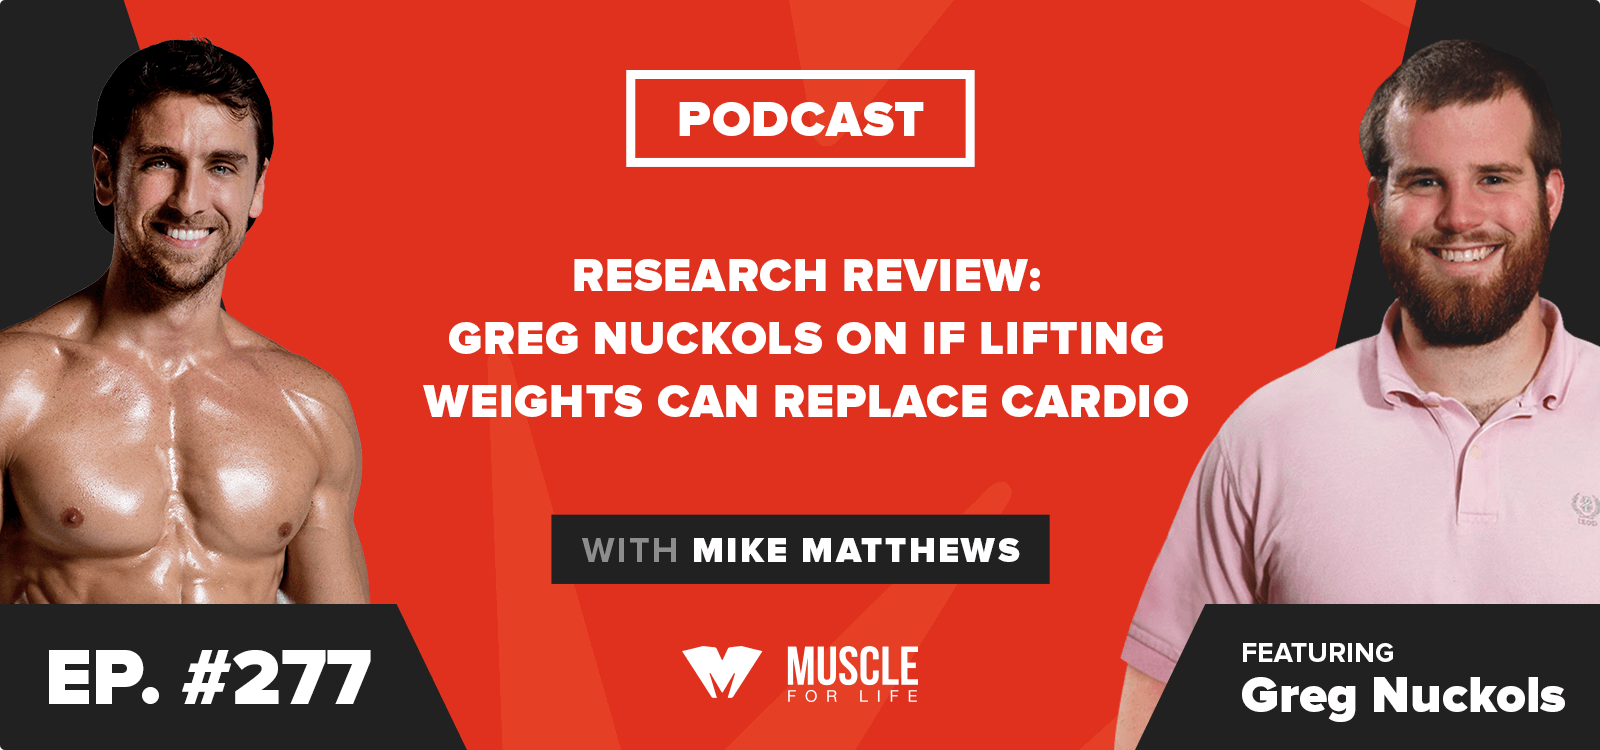 Research Review: Greg Nuckols on if Lifting Weights Can Replace Cardio